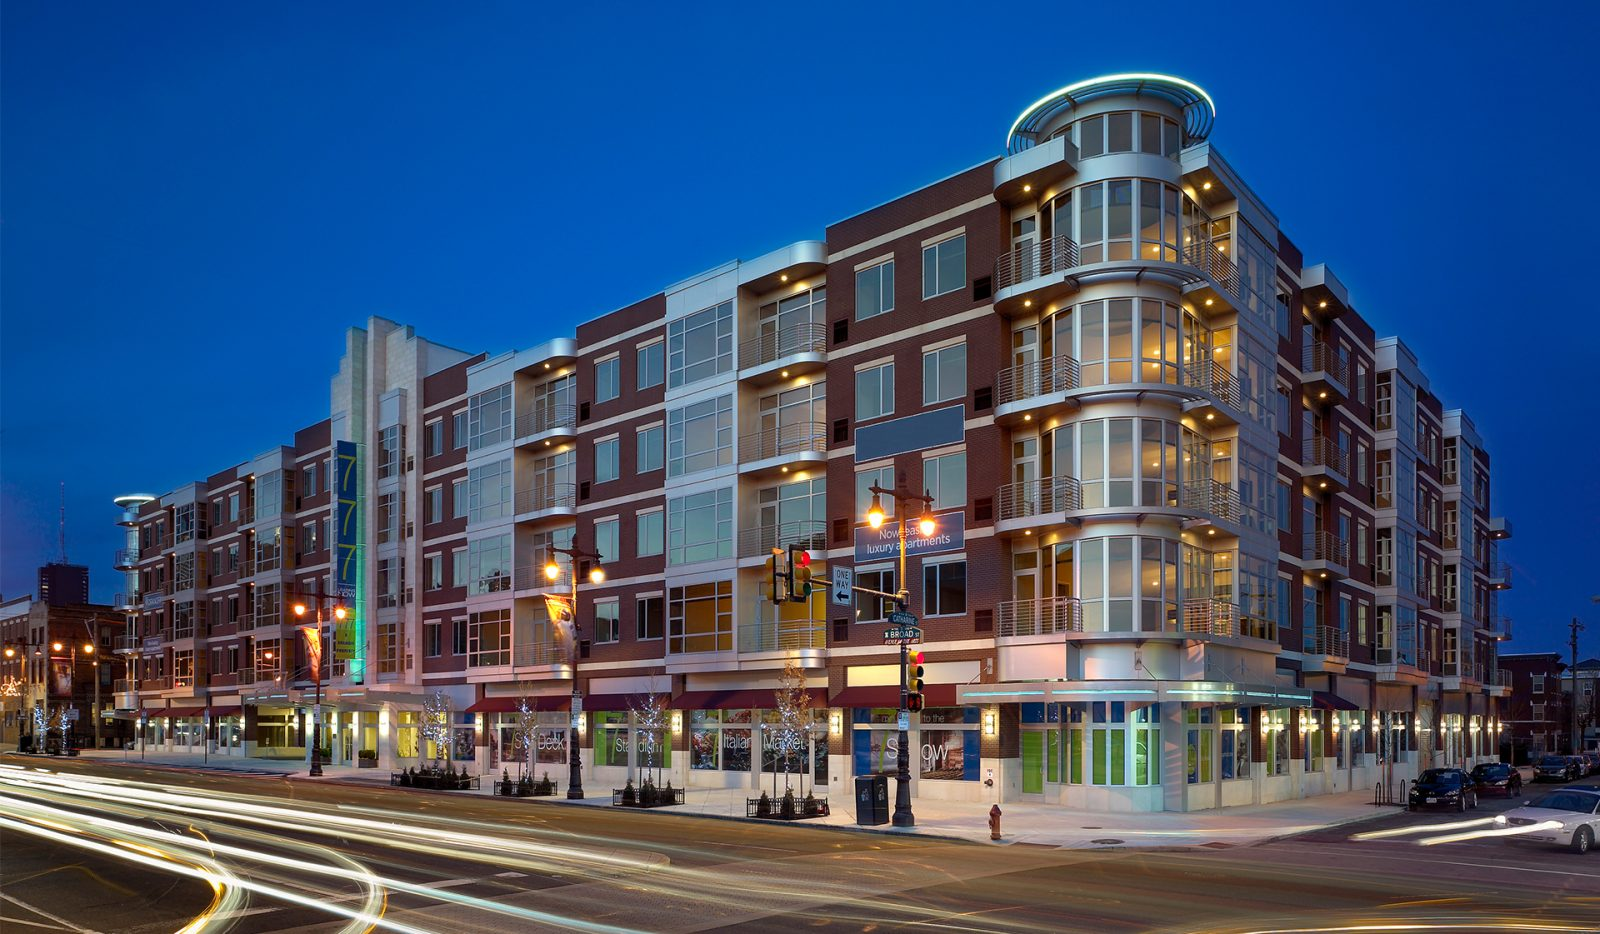 Property Management In Philly : South broad street philadelphia apartment condo